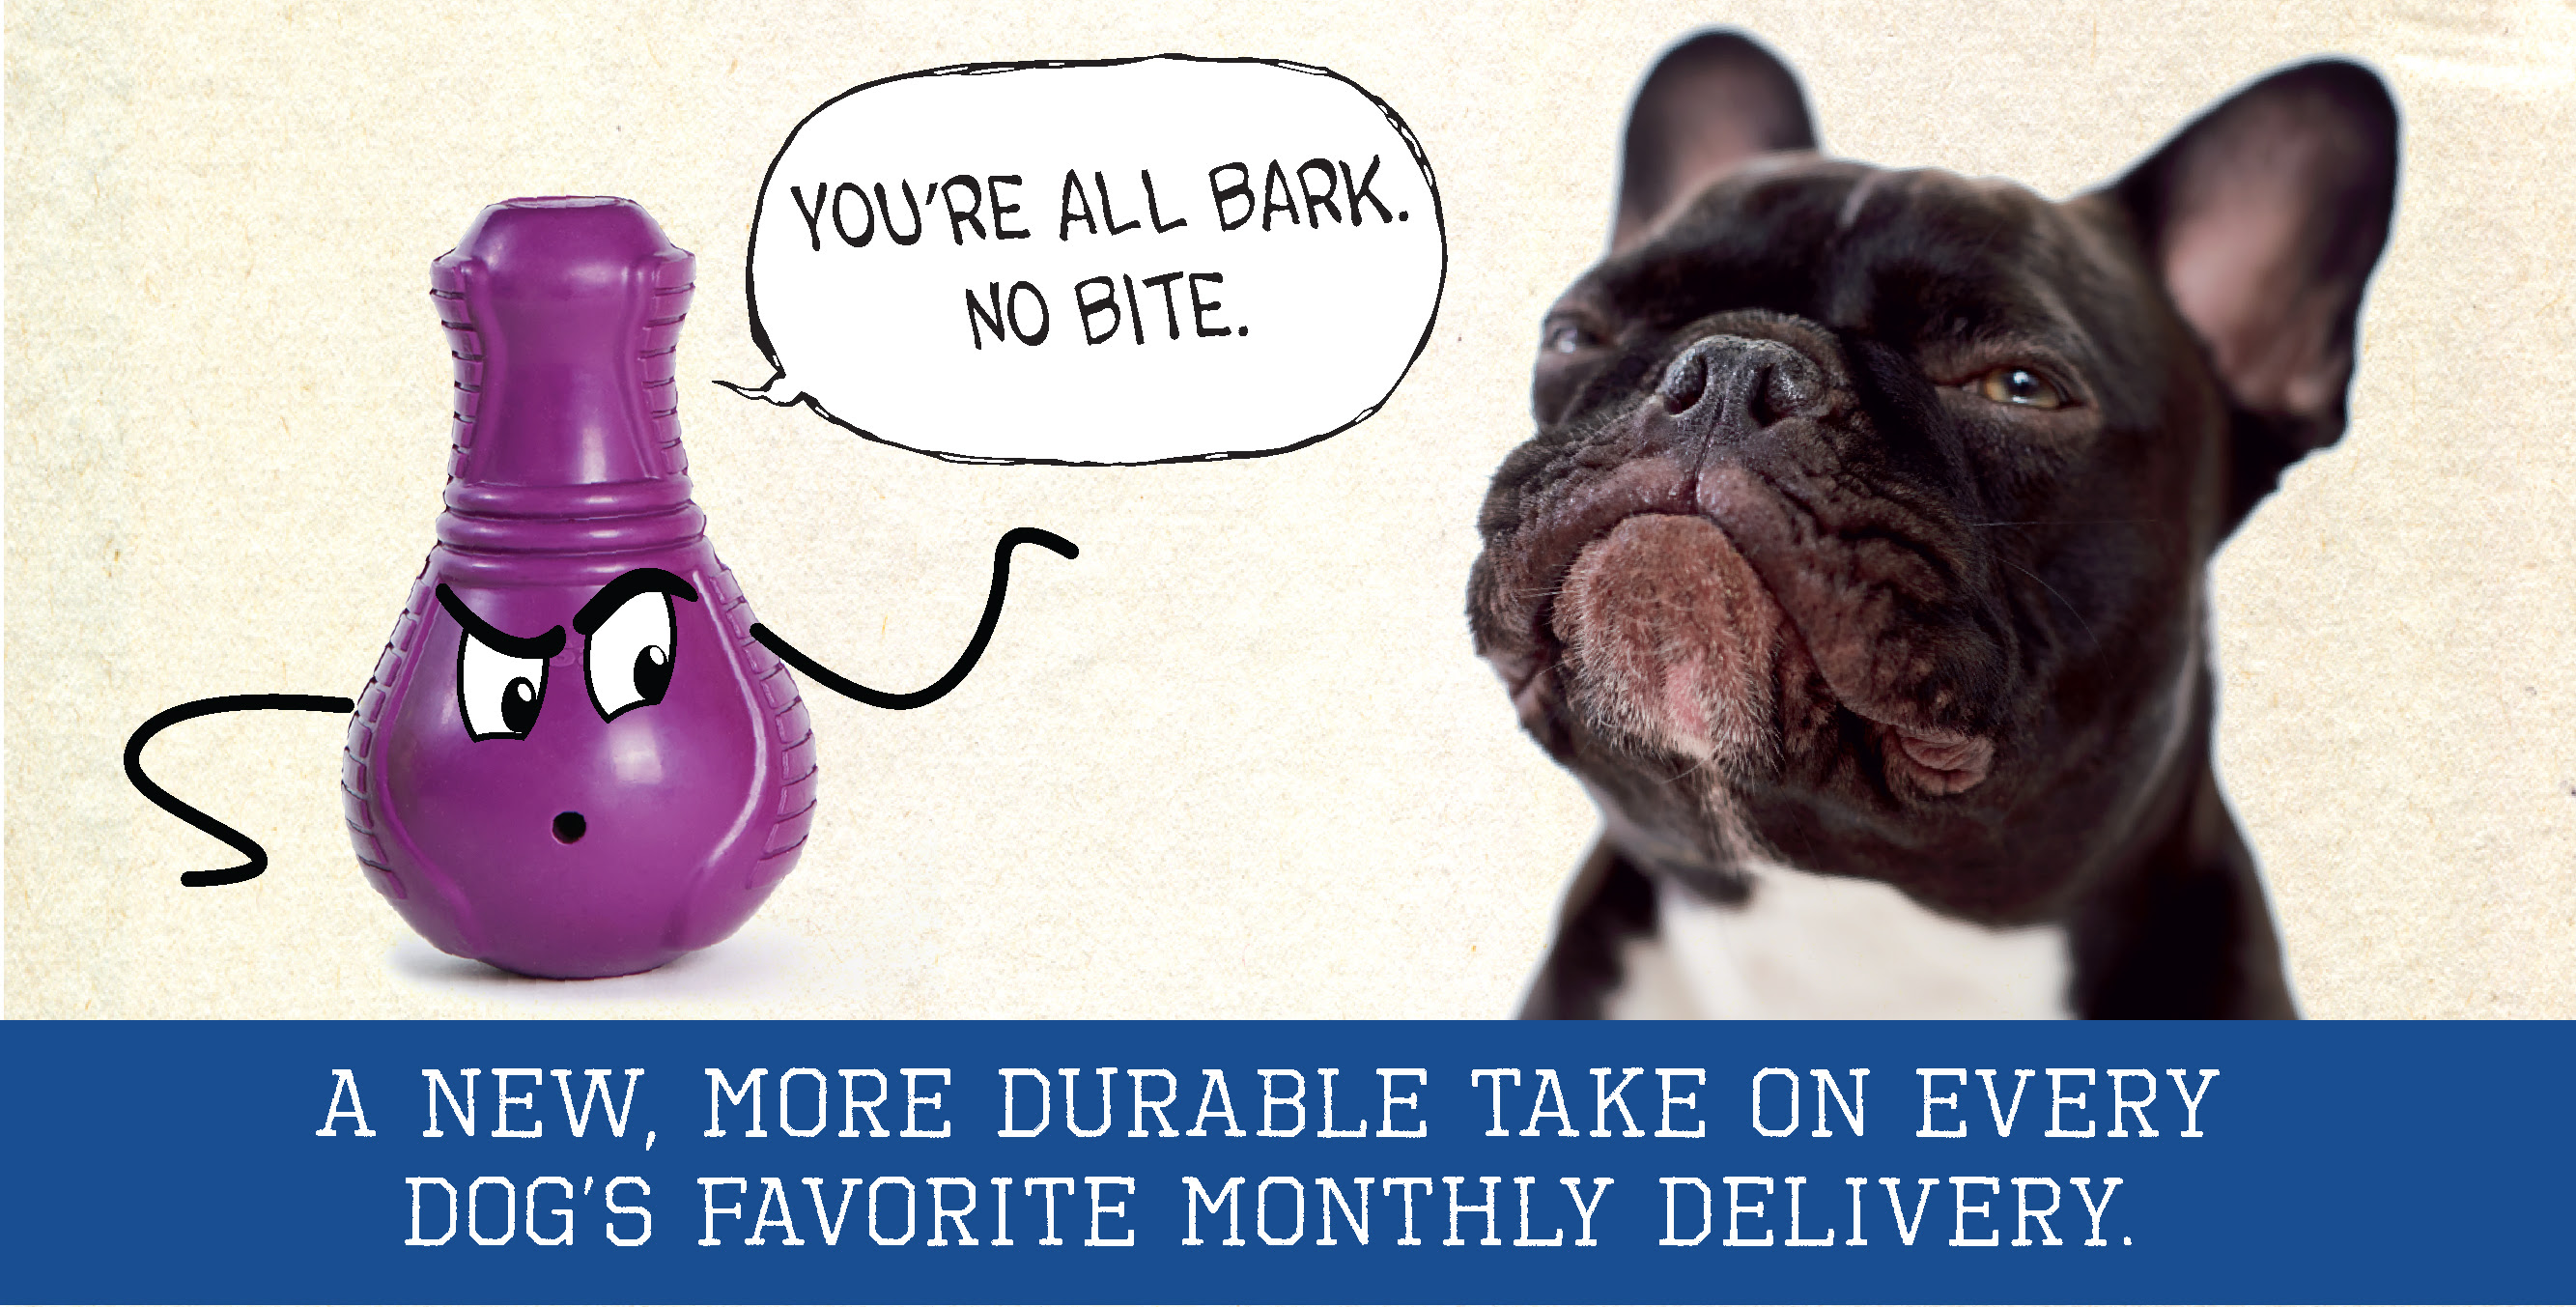 A new, more durable take on every dog's favorite monthly delivery.